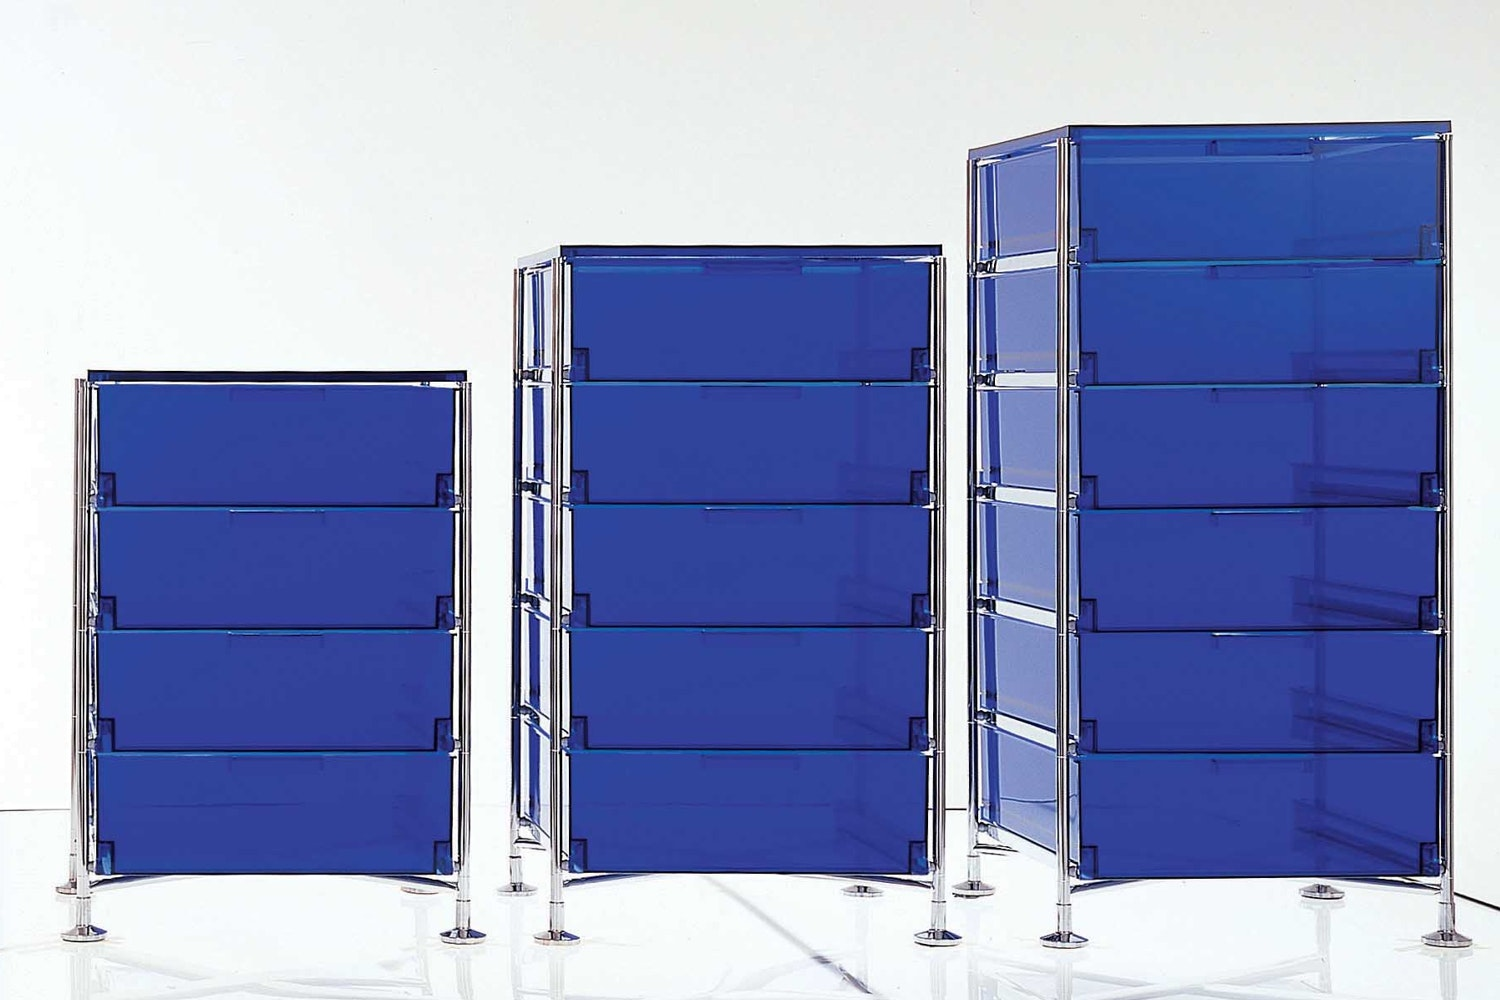 Mobil Container by Antonio Citterio with Oliver Low for Kartell